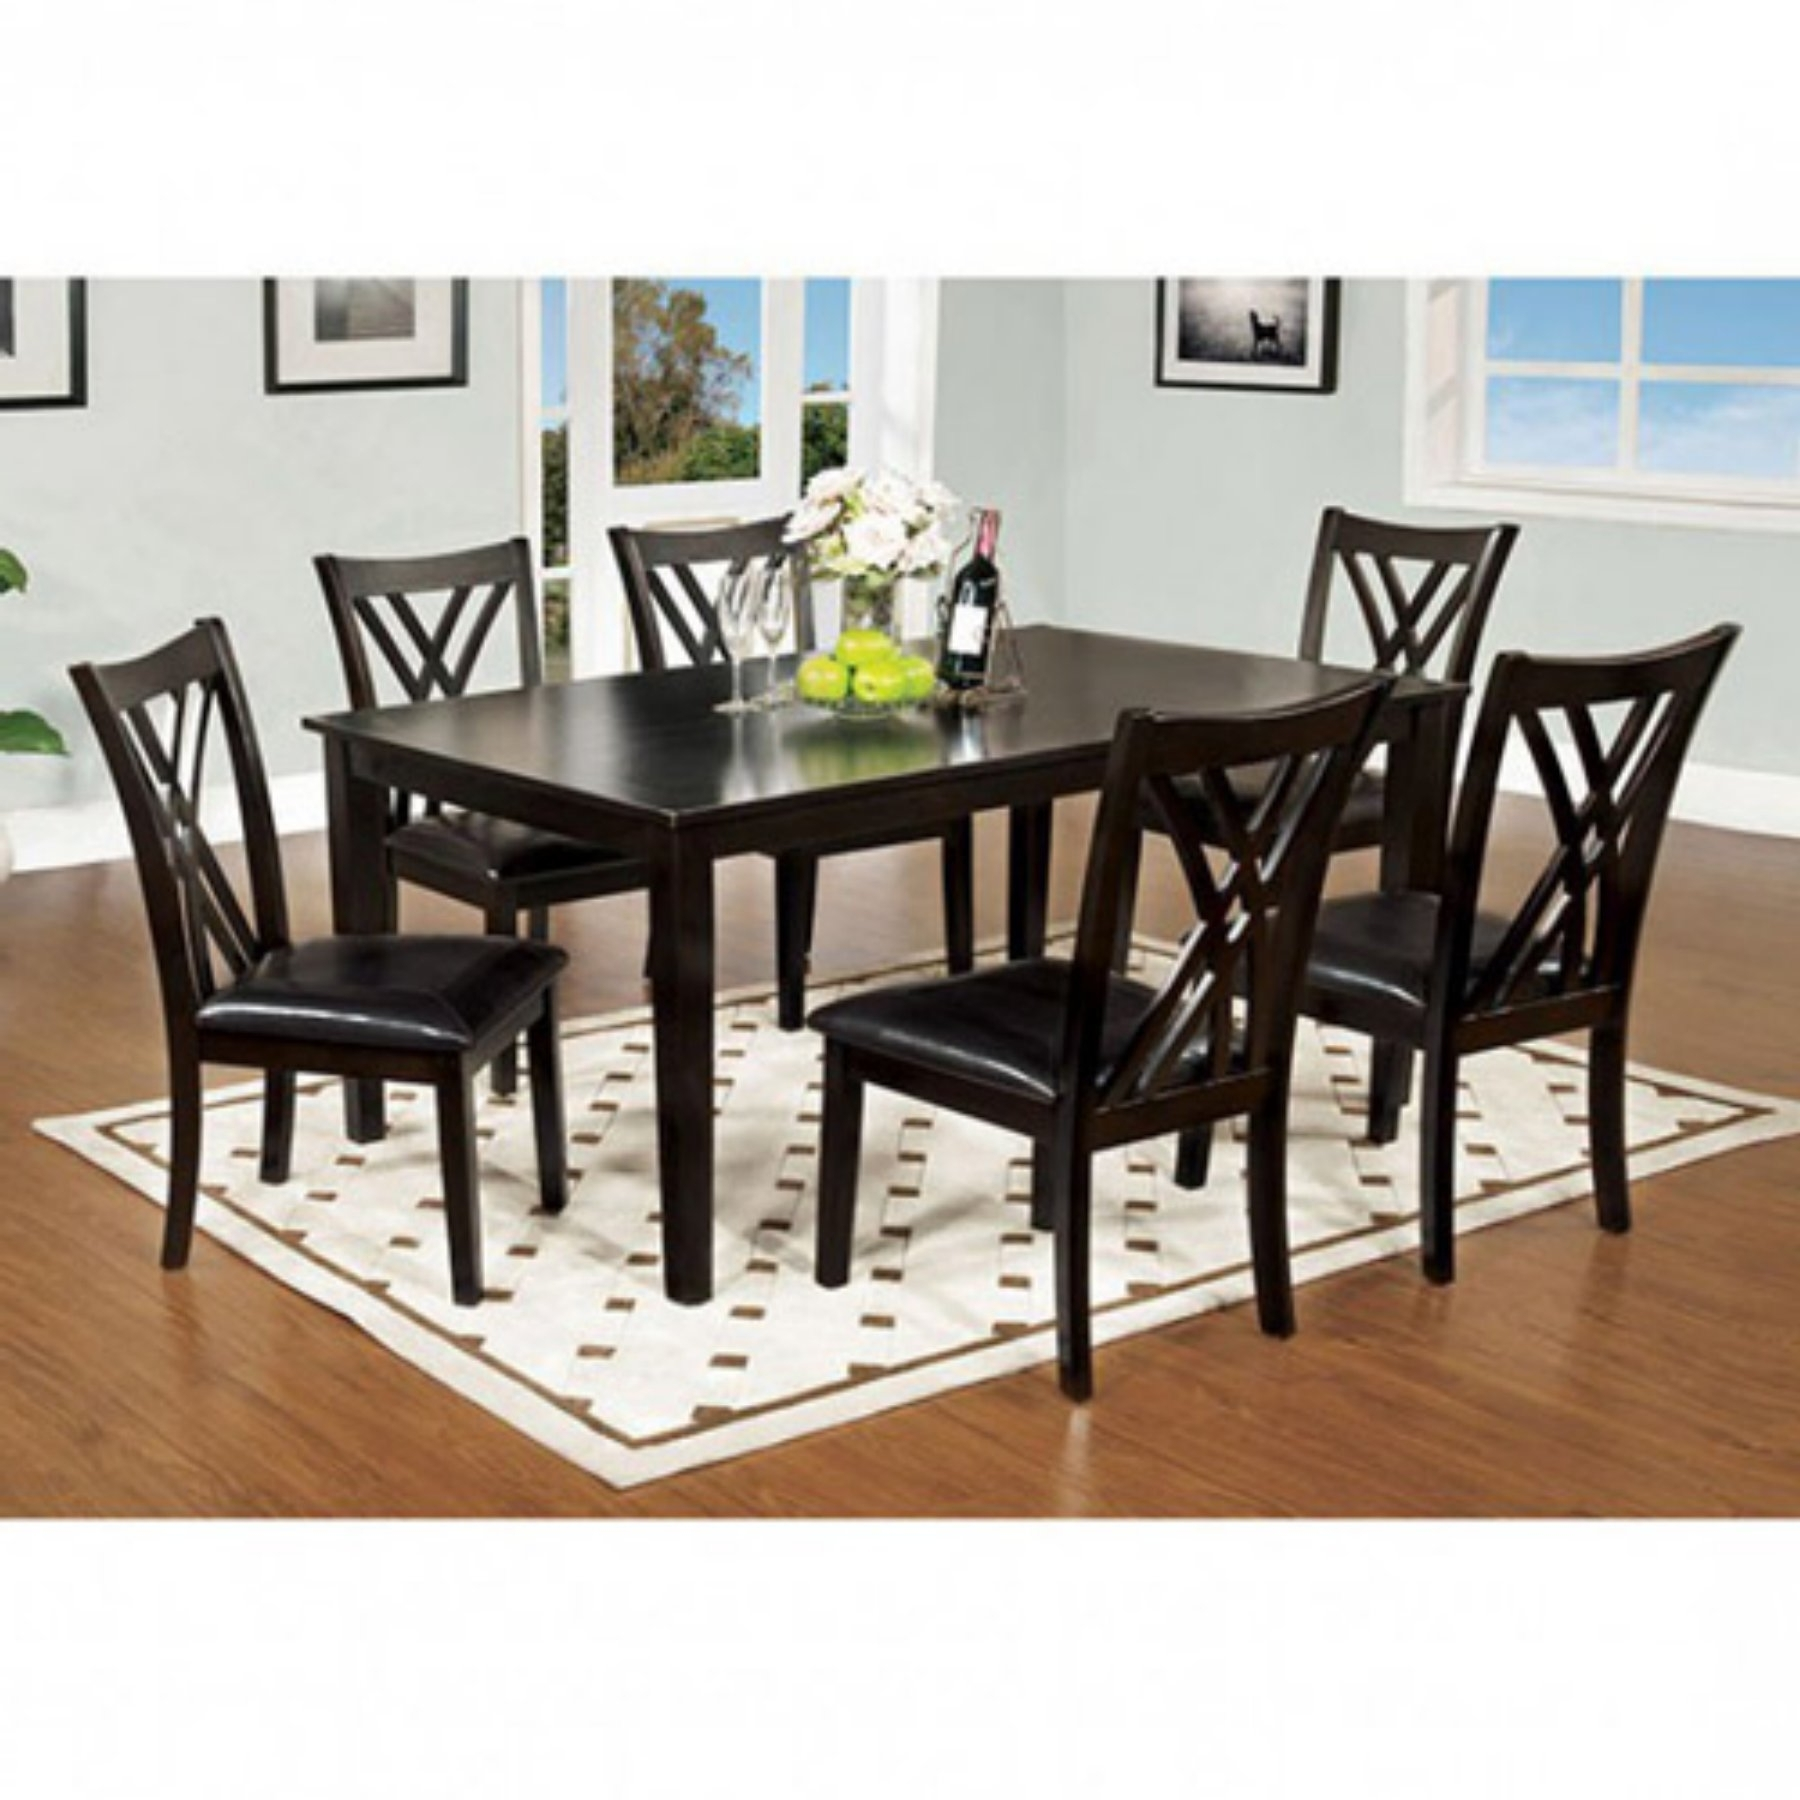 Benzara Springhill Enticing 7 Piece Rectangular Dining Table Set In Throughout Famous Craftsman 7 Piece Rectangle Extension Dining Sets With Uph Side Chairs (View 7 of 25)